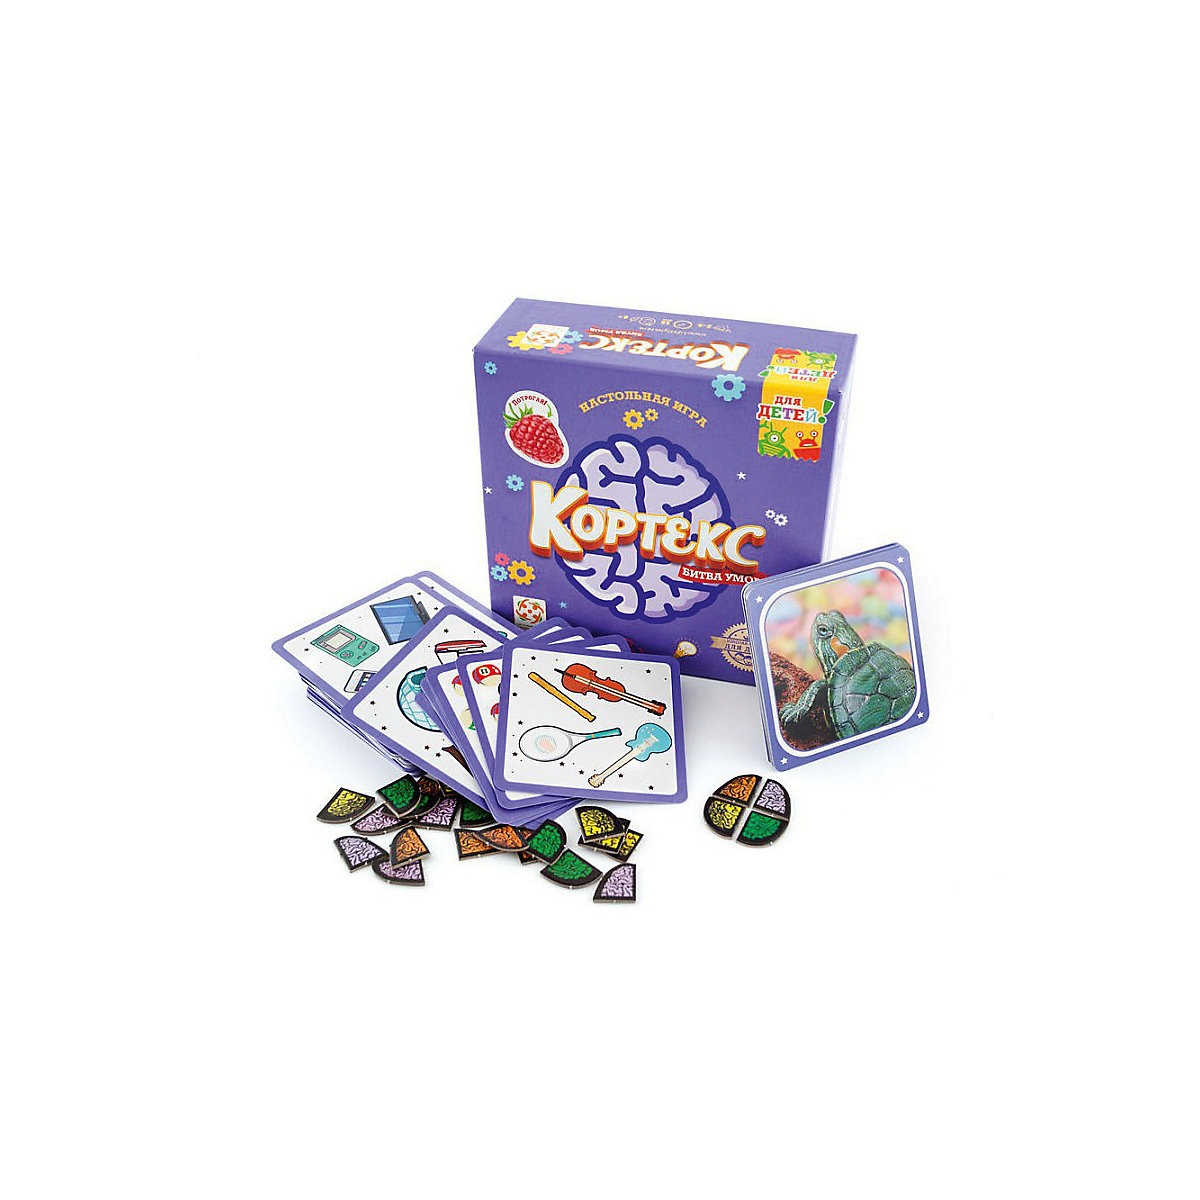 Party Games STIL ZHIZNI 9355770 Board Game Fine Motor Skills Phantom Kids card games moses 090063 fine motor skills board logic kids children